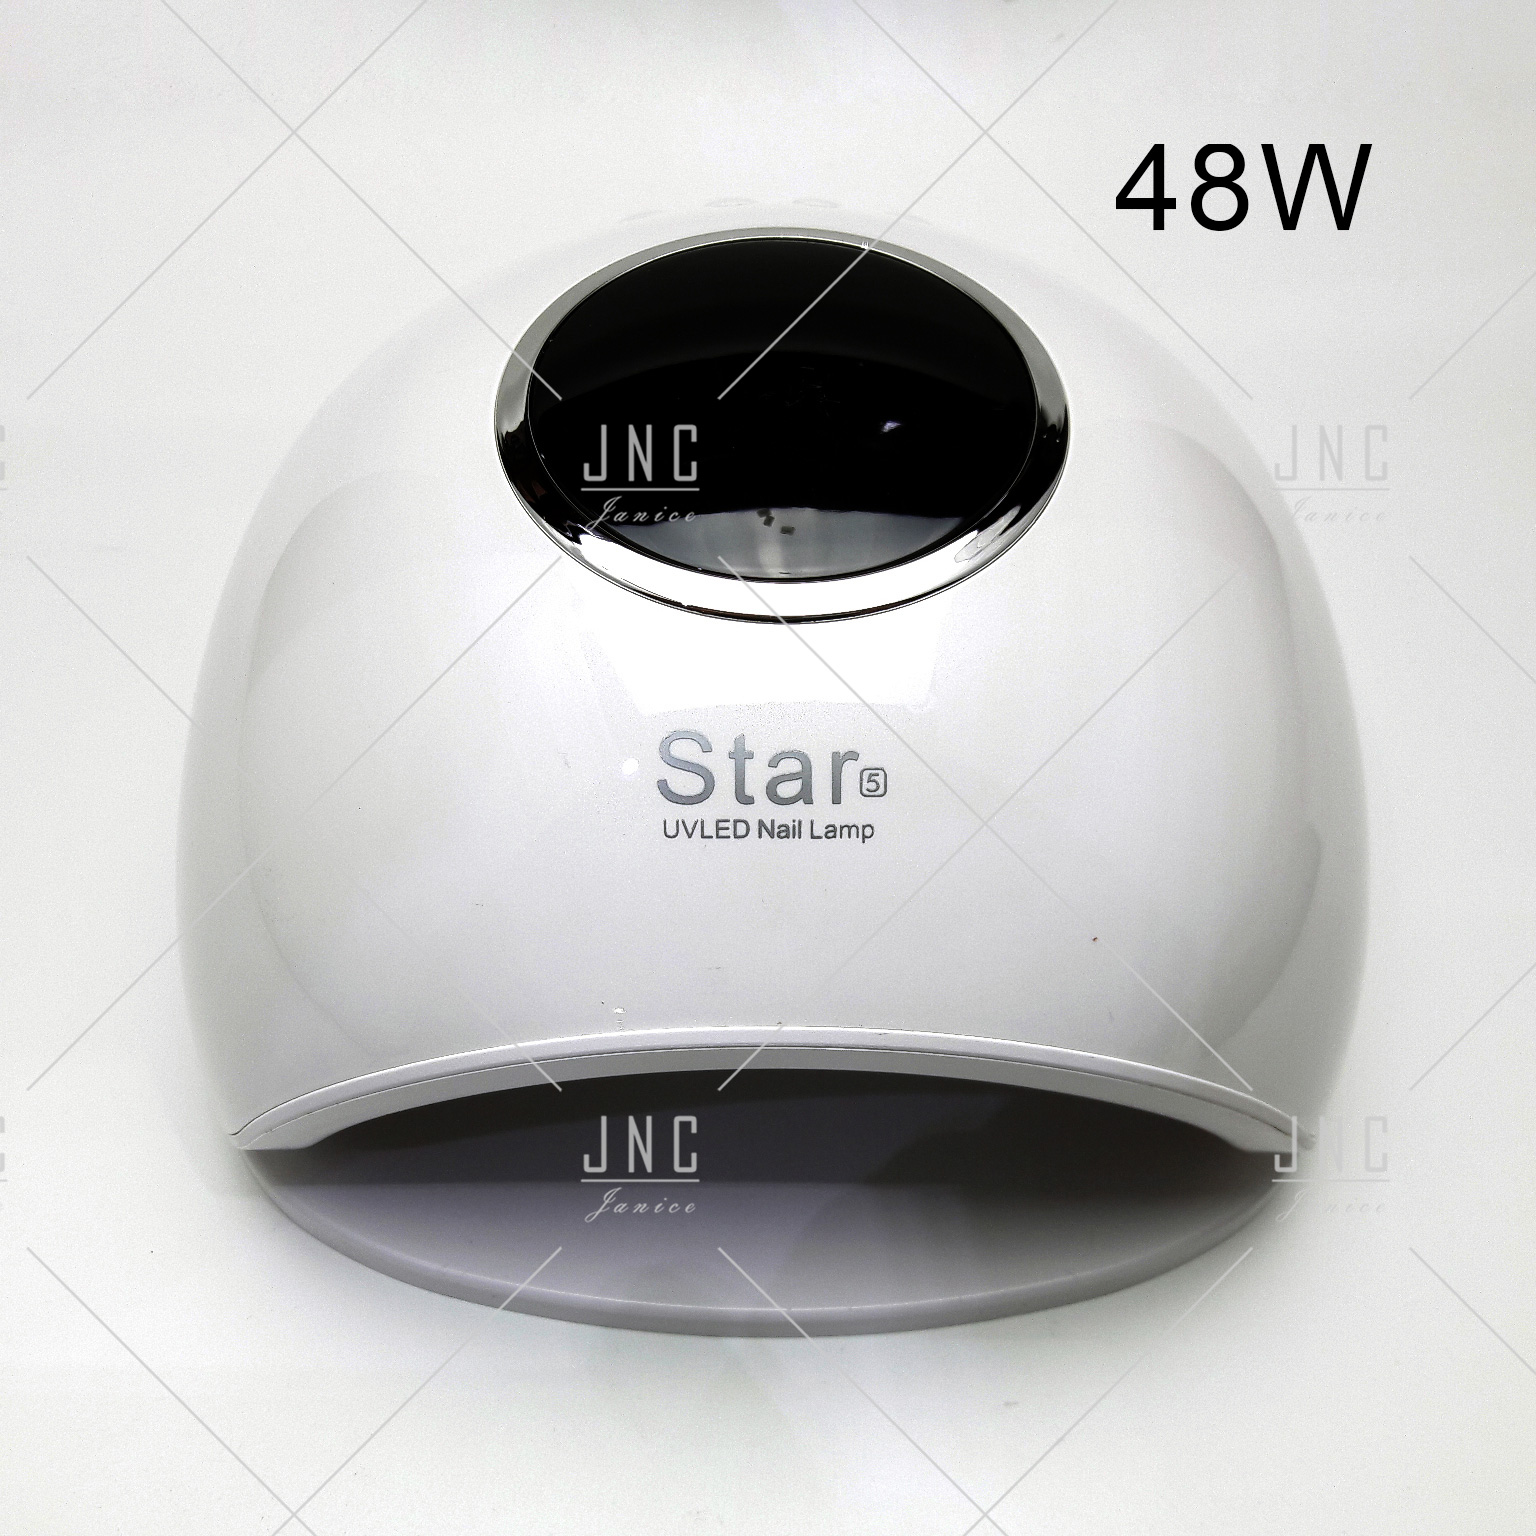 Catalisador LED UV 48W | STAR 5 | Ref.861502